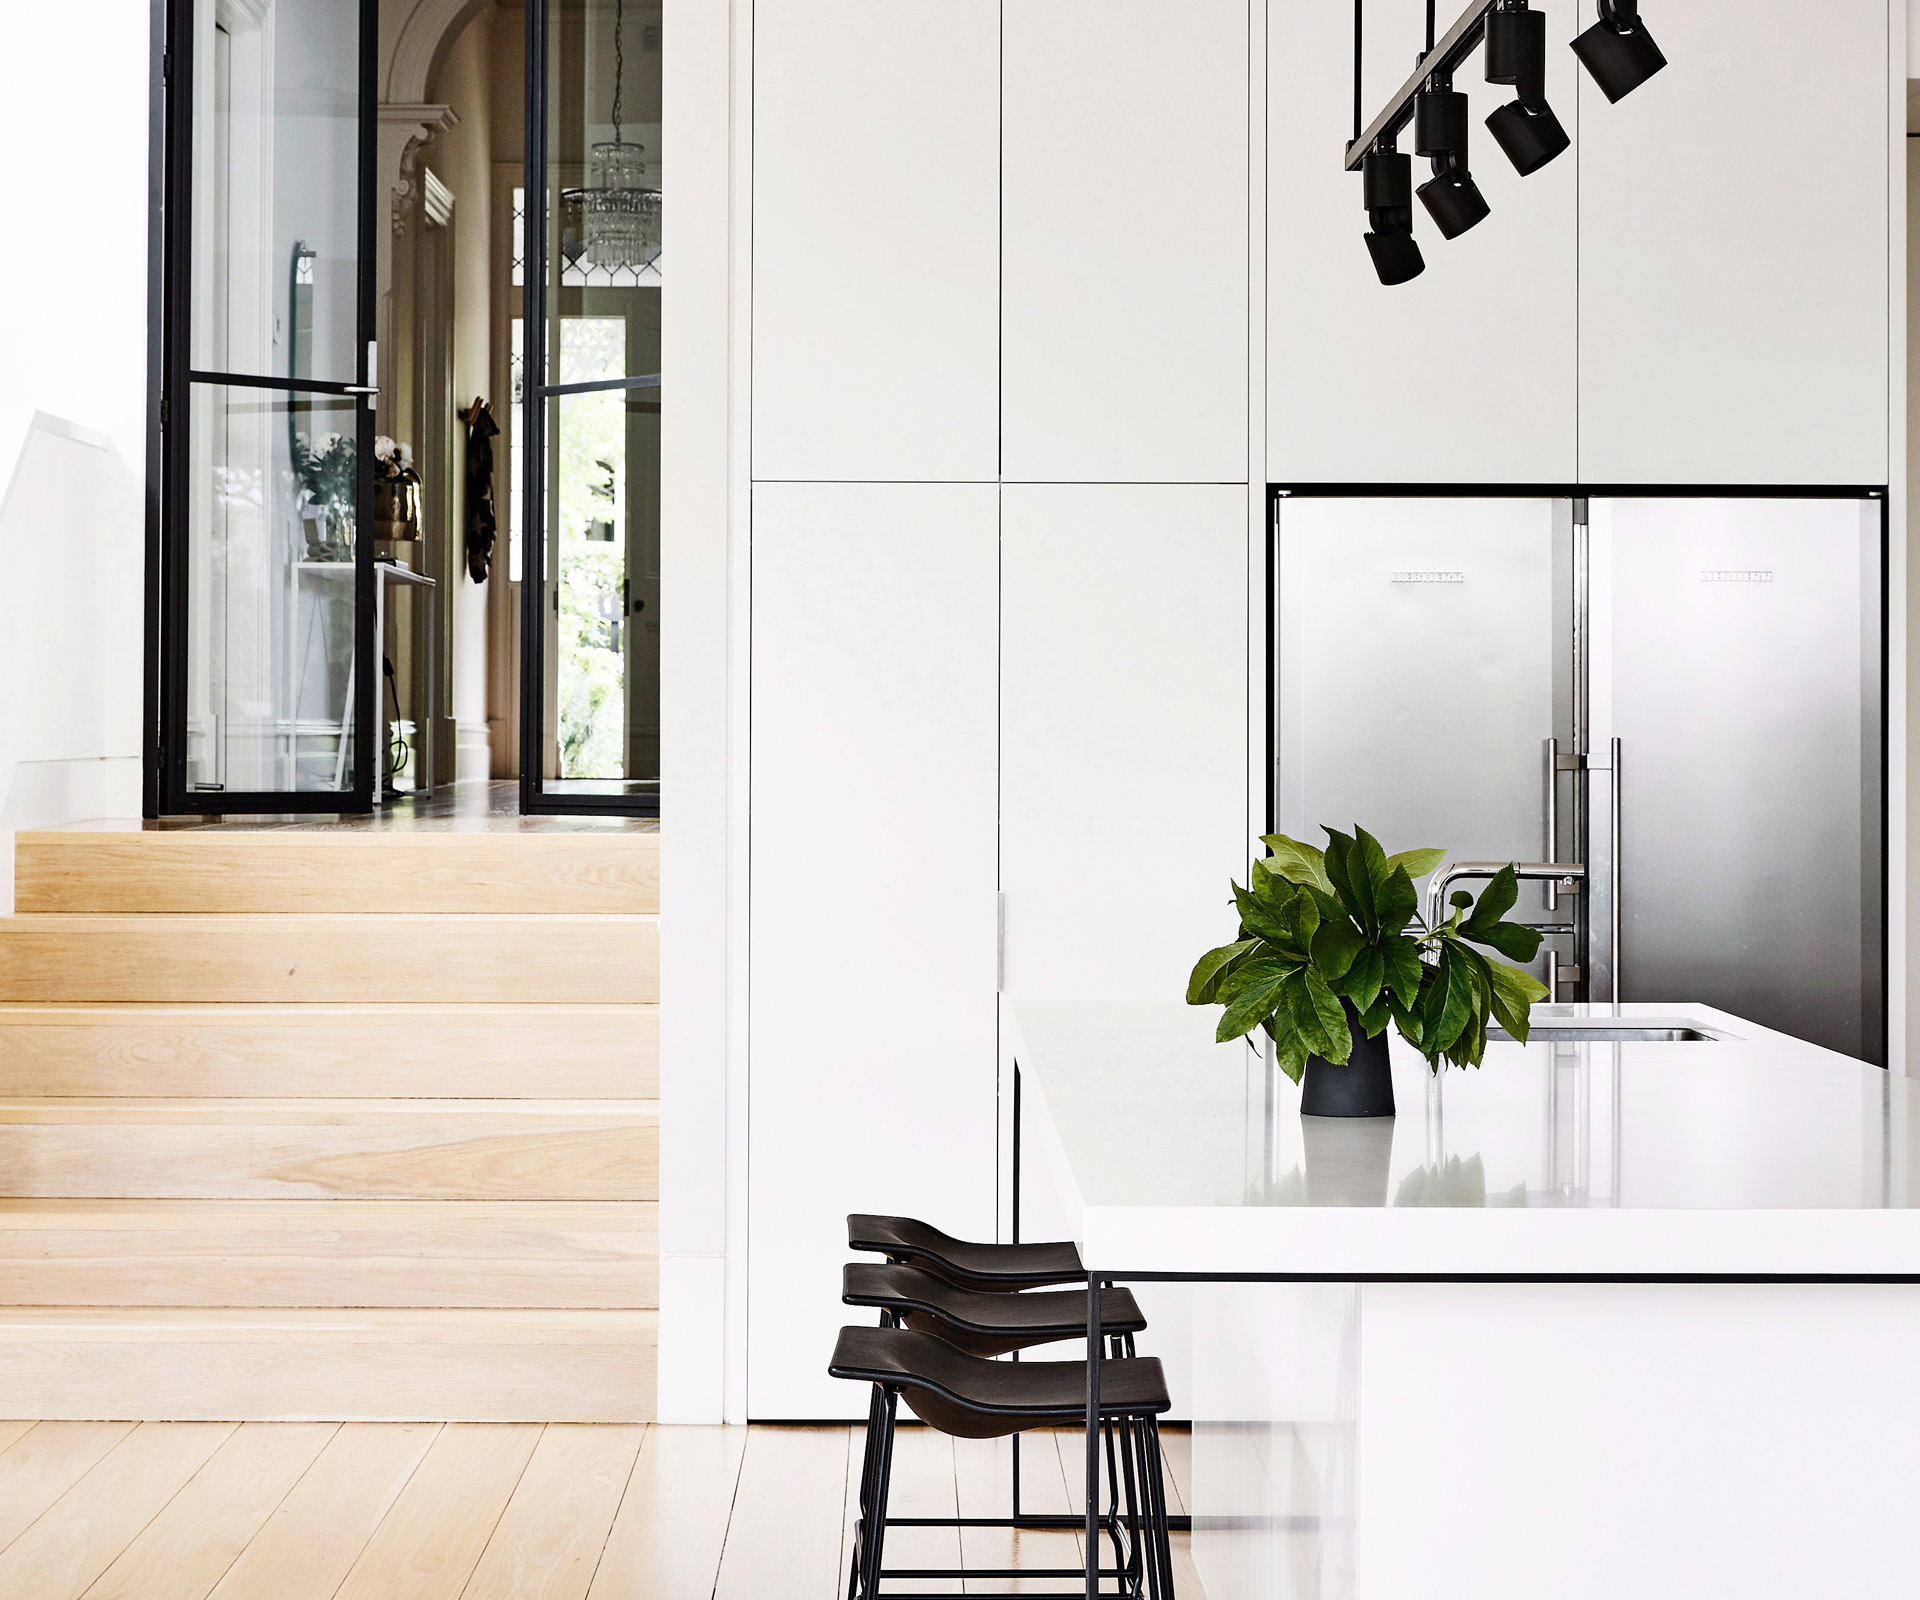 11 of the best modern minimalist kitchens | Homes To Love